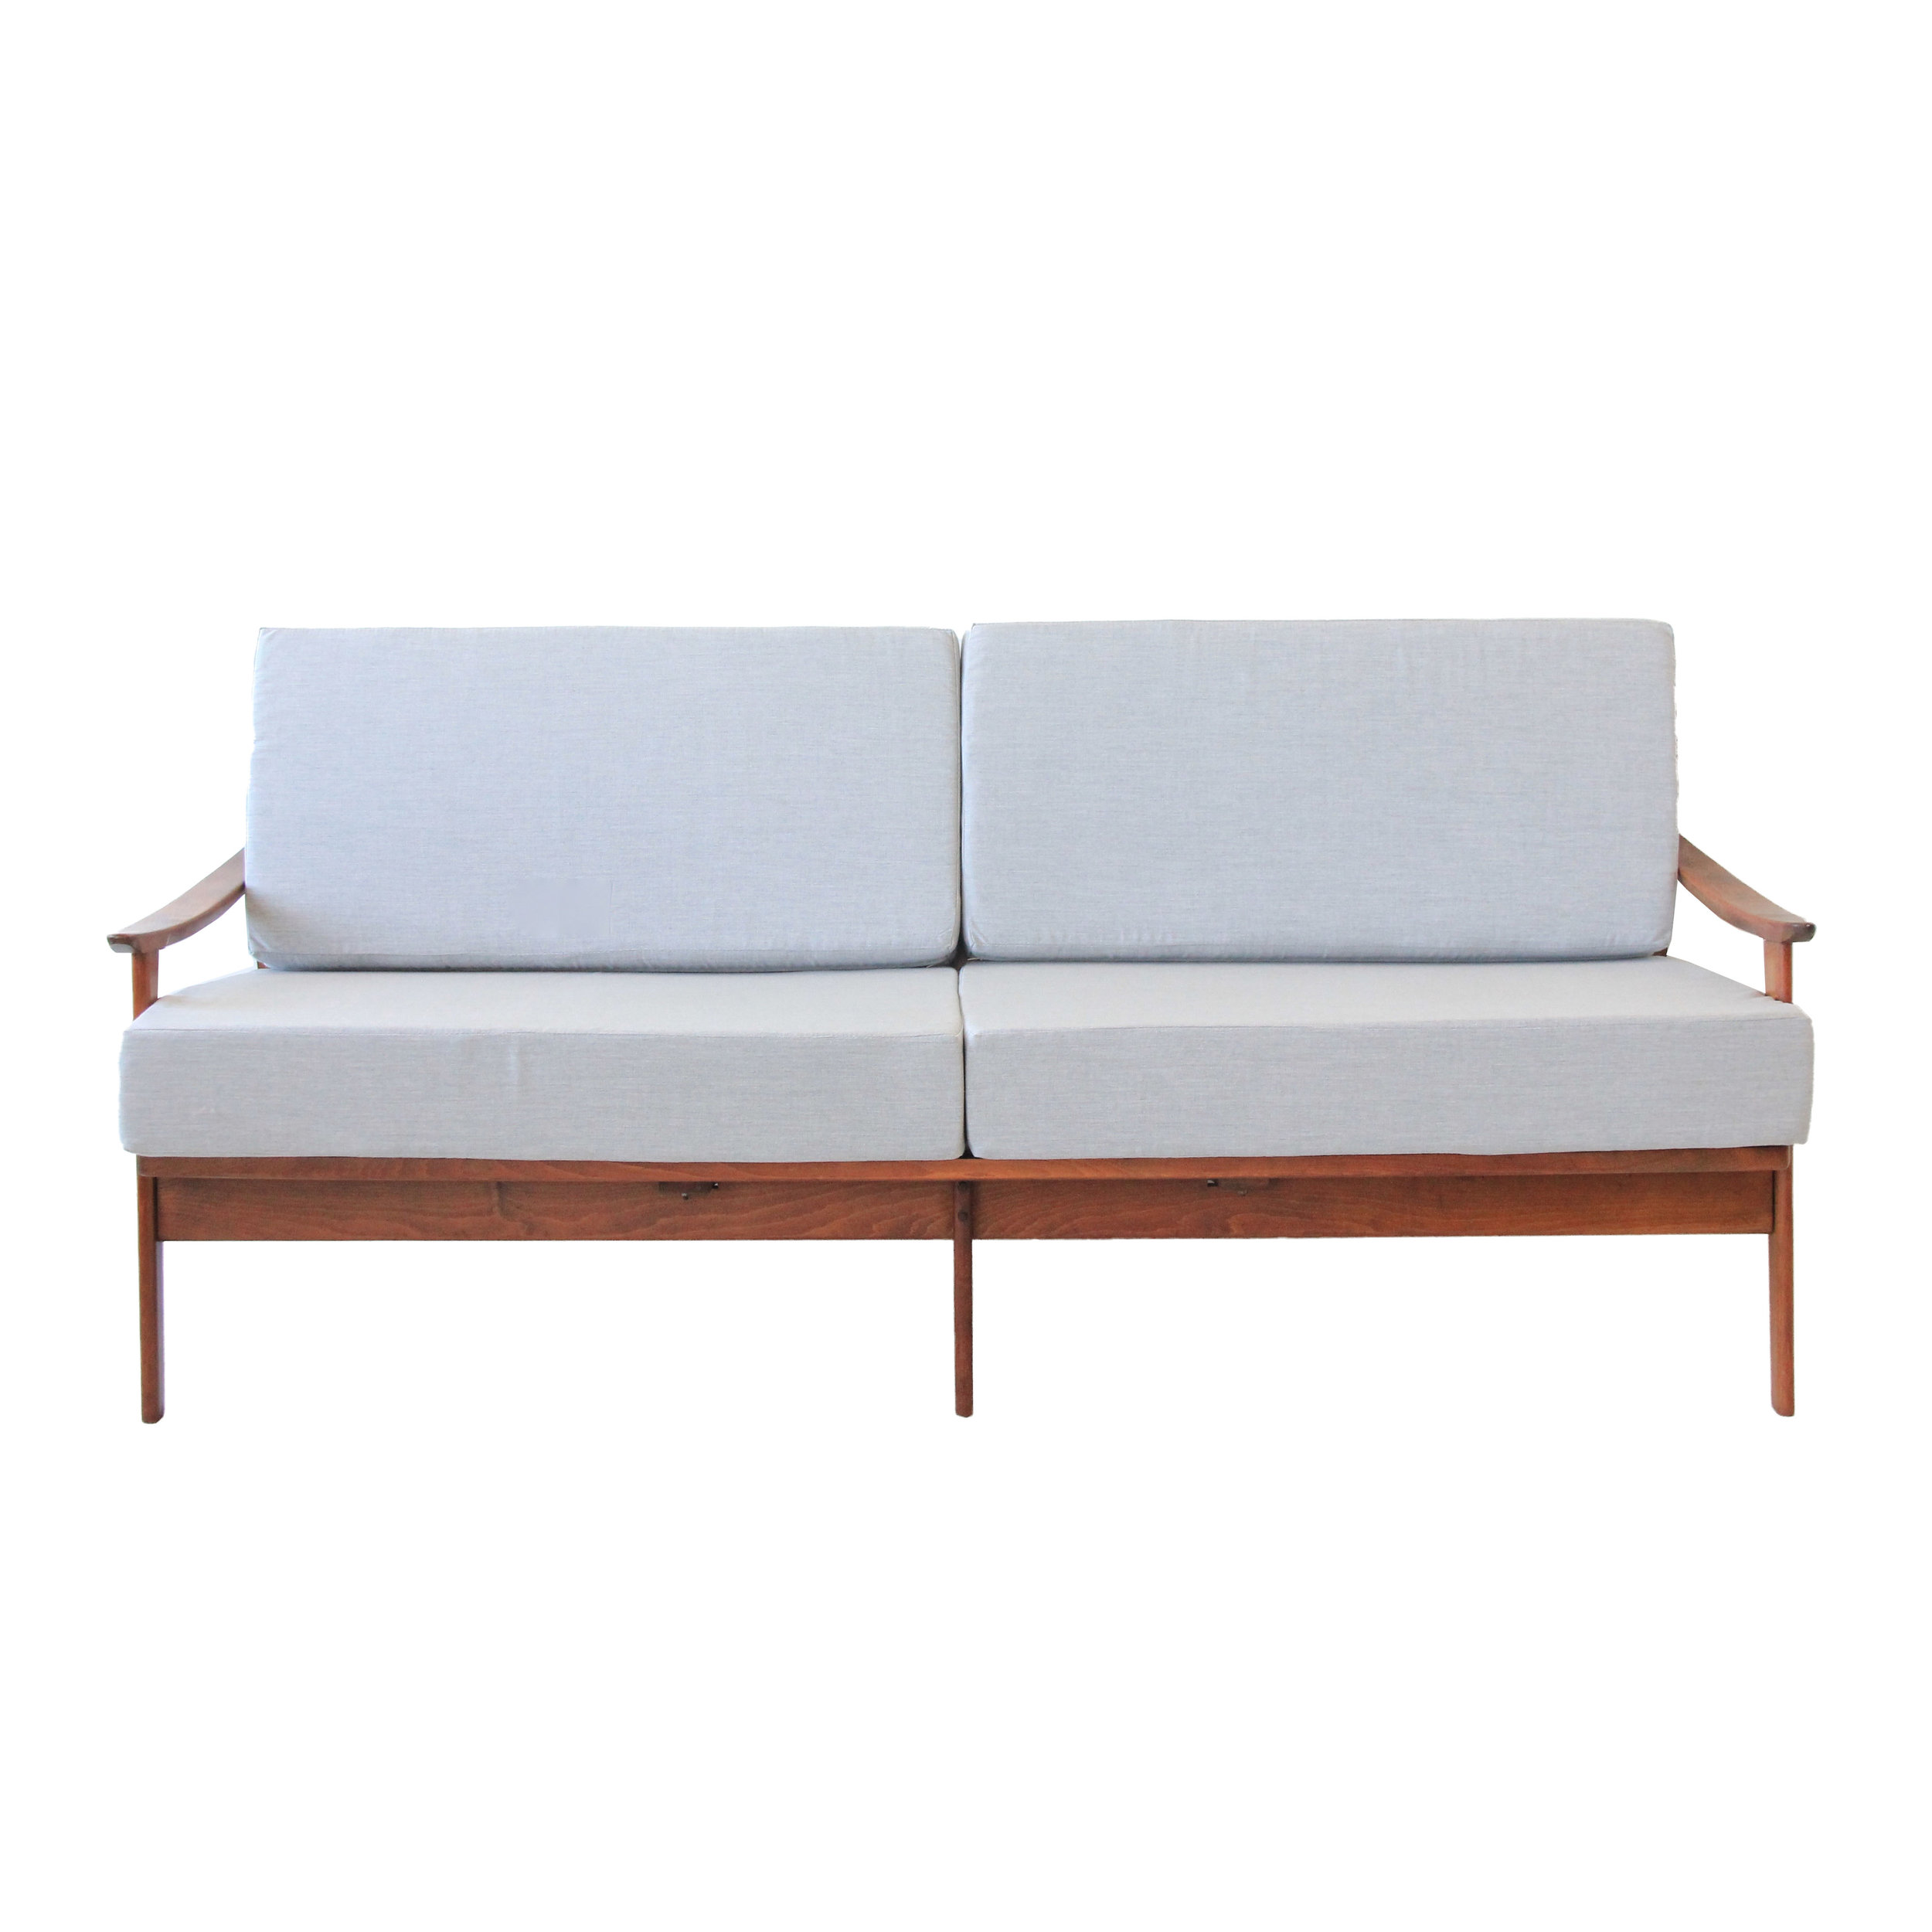 Vintage Mid Century Modern Grey Day Bed